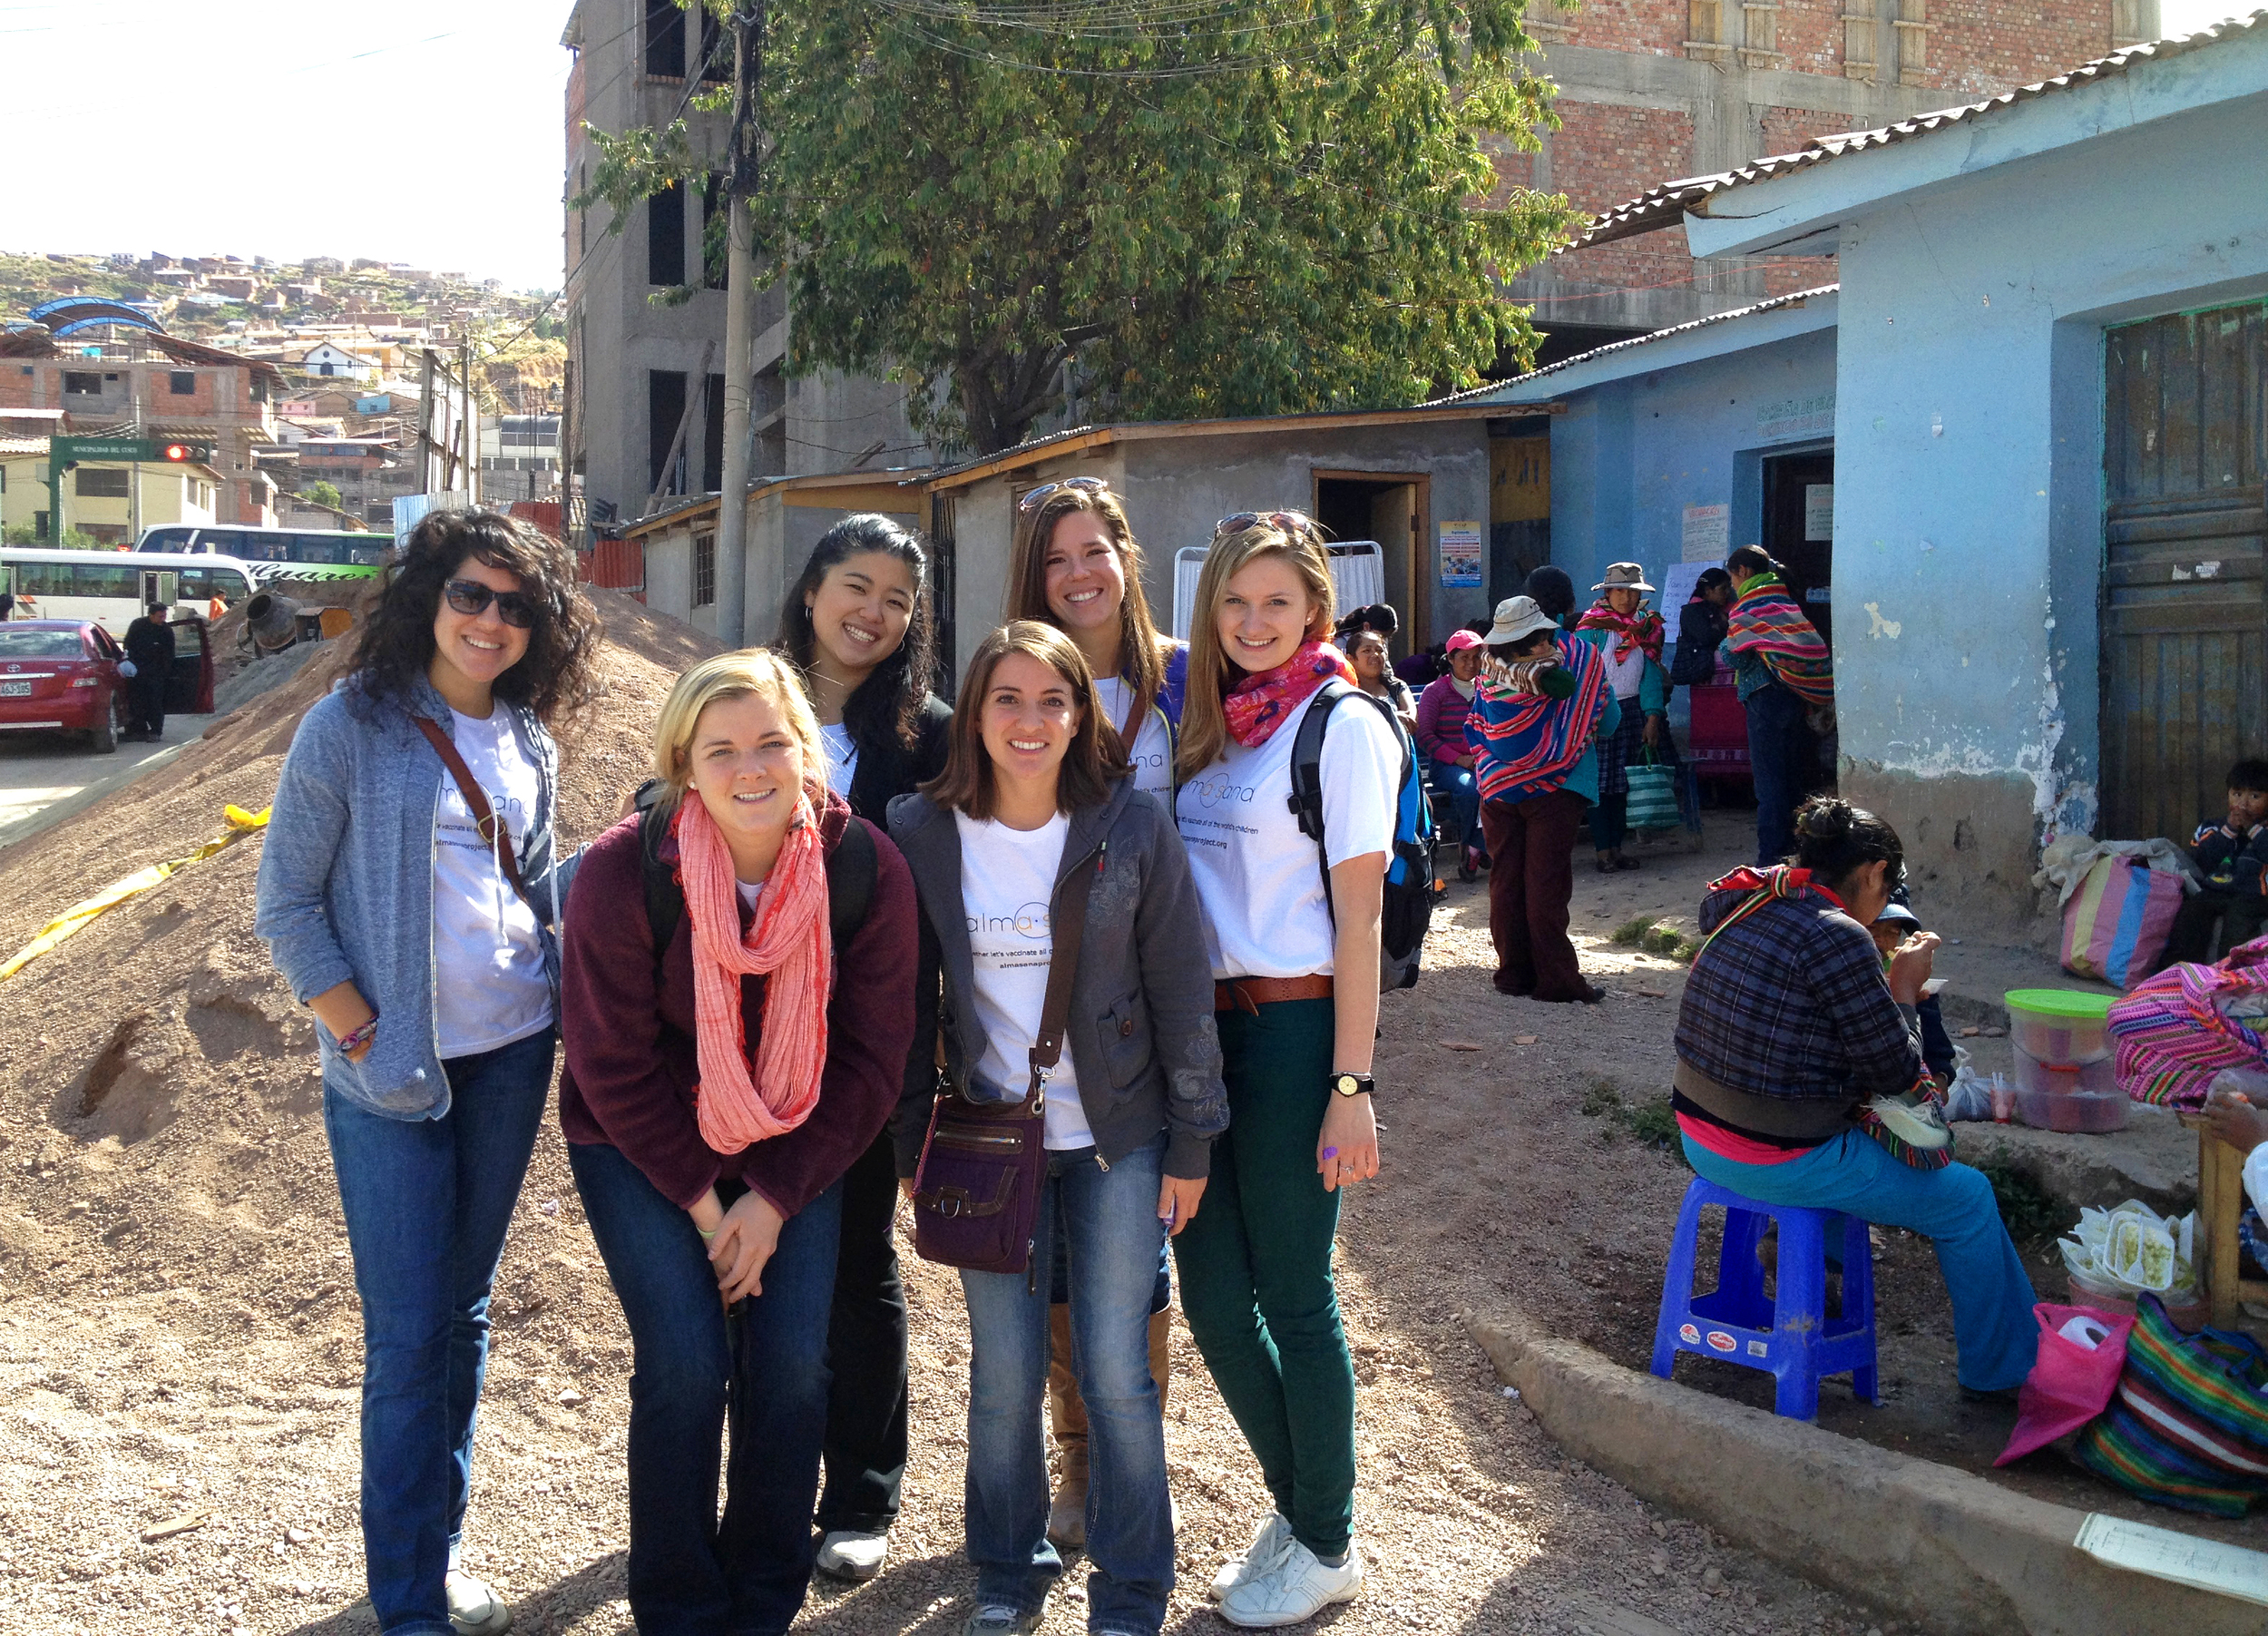 Today (Aug. 10) we say goodbye to our 6 amazing summer interns! As Alma Sana's first interns ever, they worked tirelessly day-to-day giving our patented vaccine bracelets to moms and babies and tracking data with nurses in two Cusco clinics. We will deeply miss them and the positivity, humor, passion, and dedication they brought to our team every day!    As they depart, we're excited to welcome 6 fall interns to carry out the second half of the study. And we're thrilled that one of our summer interns, Joanie Kim, will be staying with us through the fall! Here: our awesome summer interns in front of one of the clinics we're working in. Photo taken: May 24, 2013.